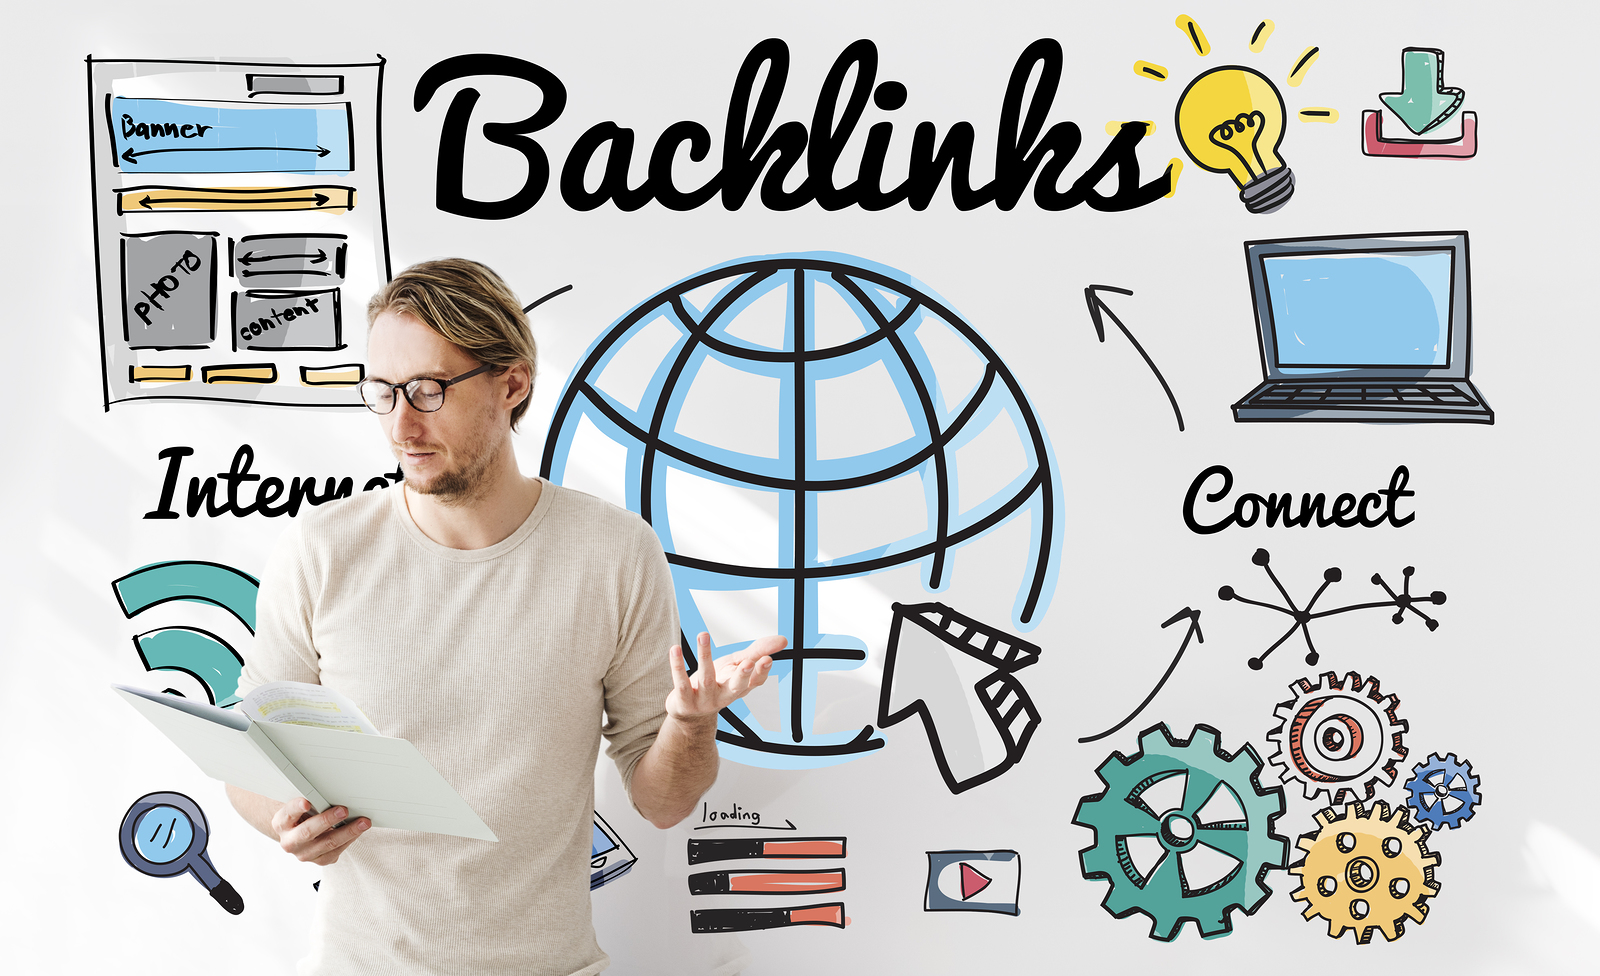 How to Build Backlinks in 2020 – The Do's and the Absolute Don'ts